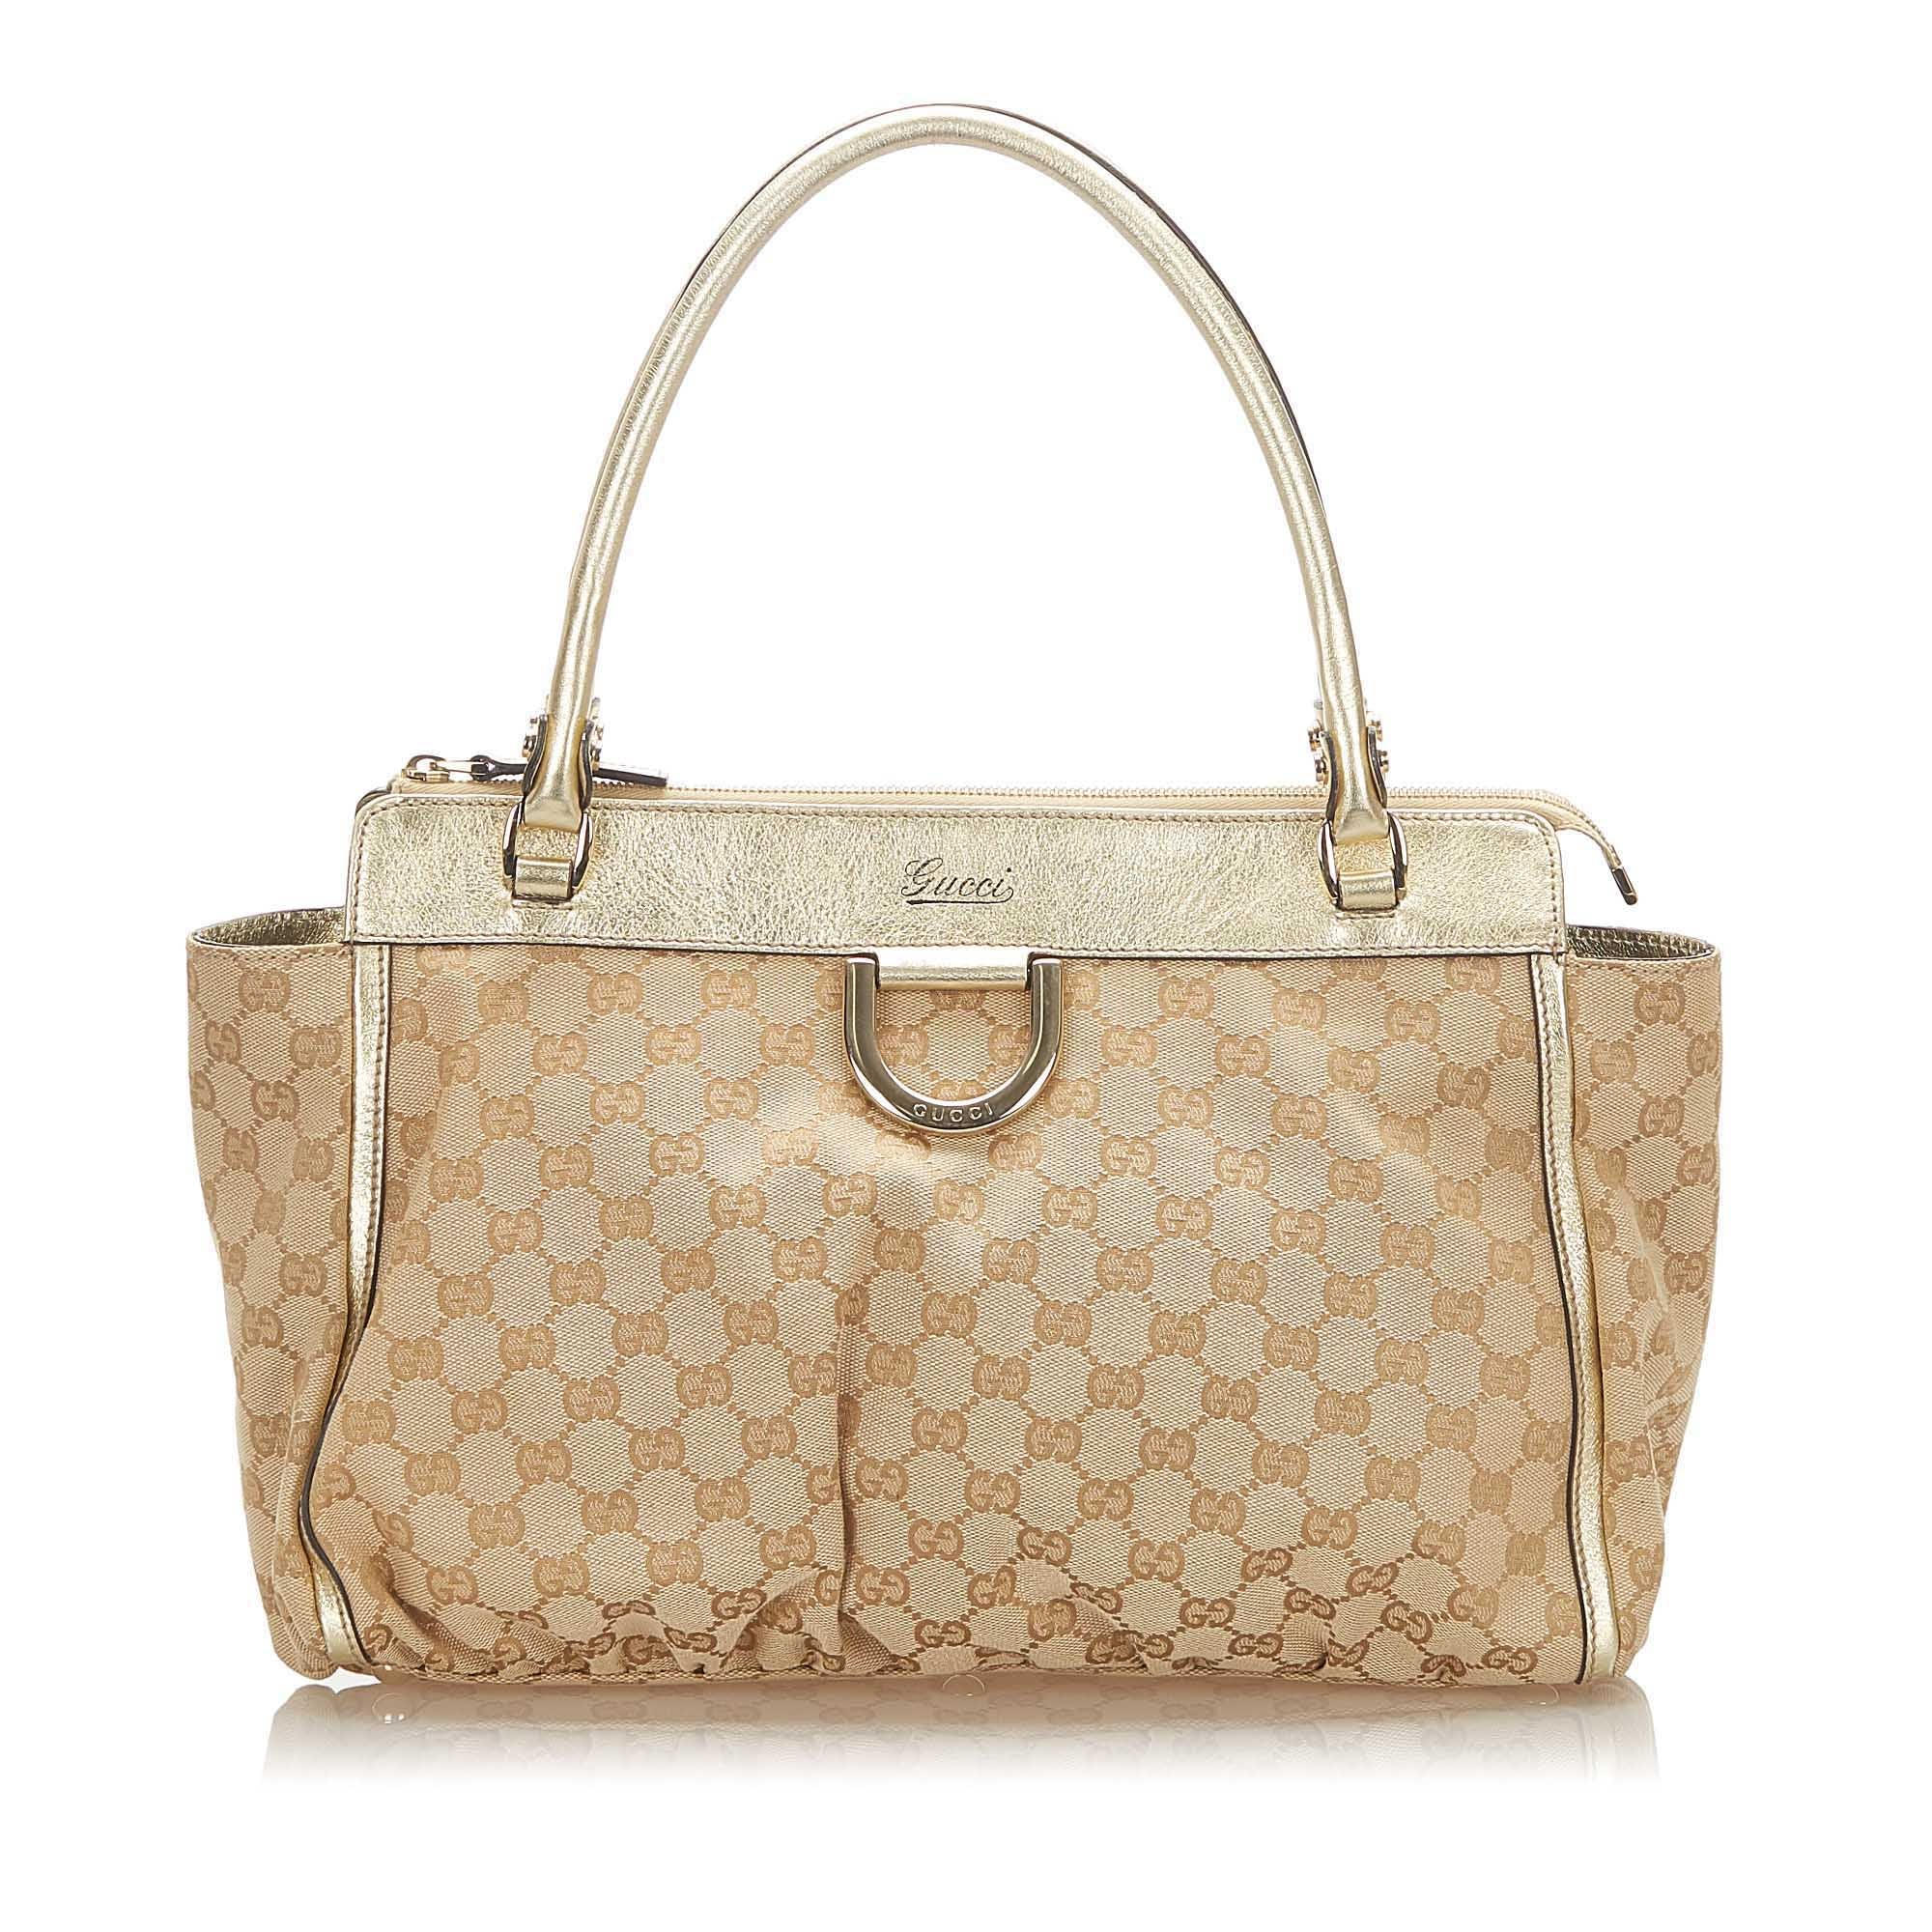 Gucci Brown Abbey GG Canvas Handbag